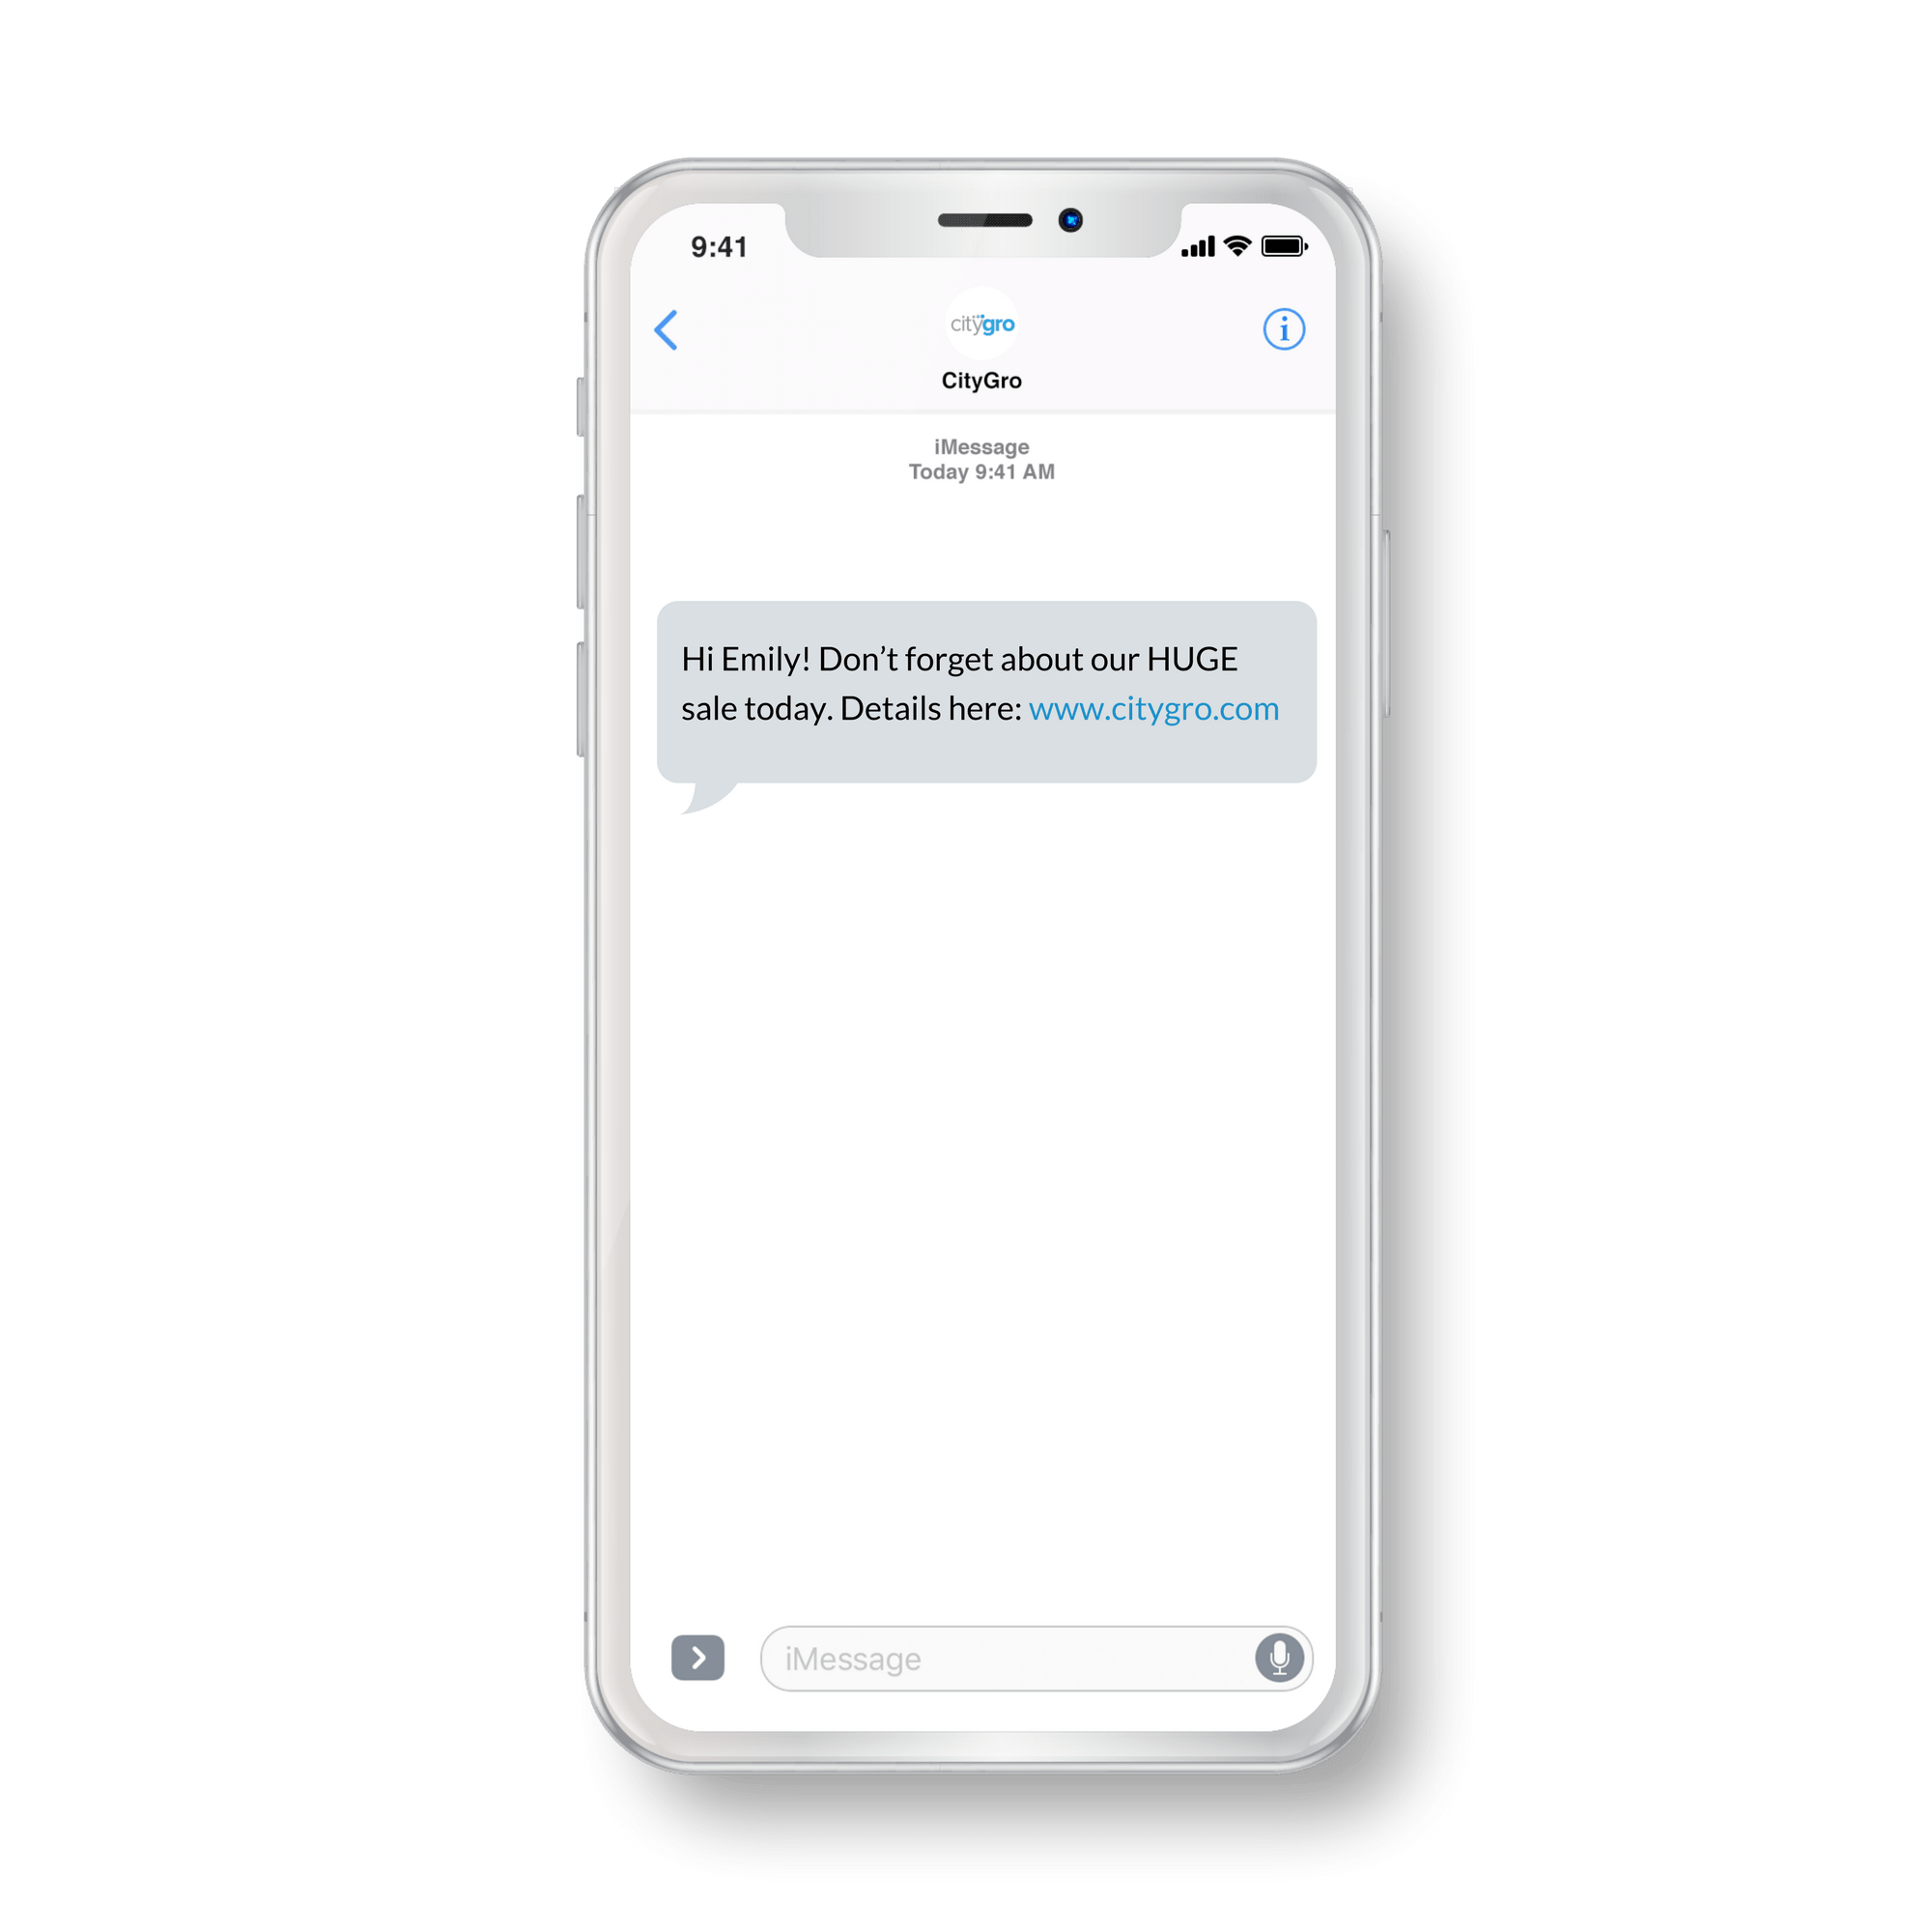 iphonex_texting-mockup_4_one-message-min